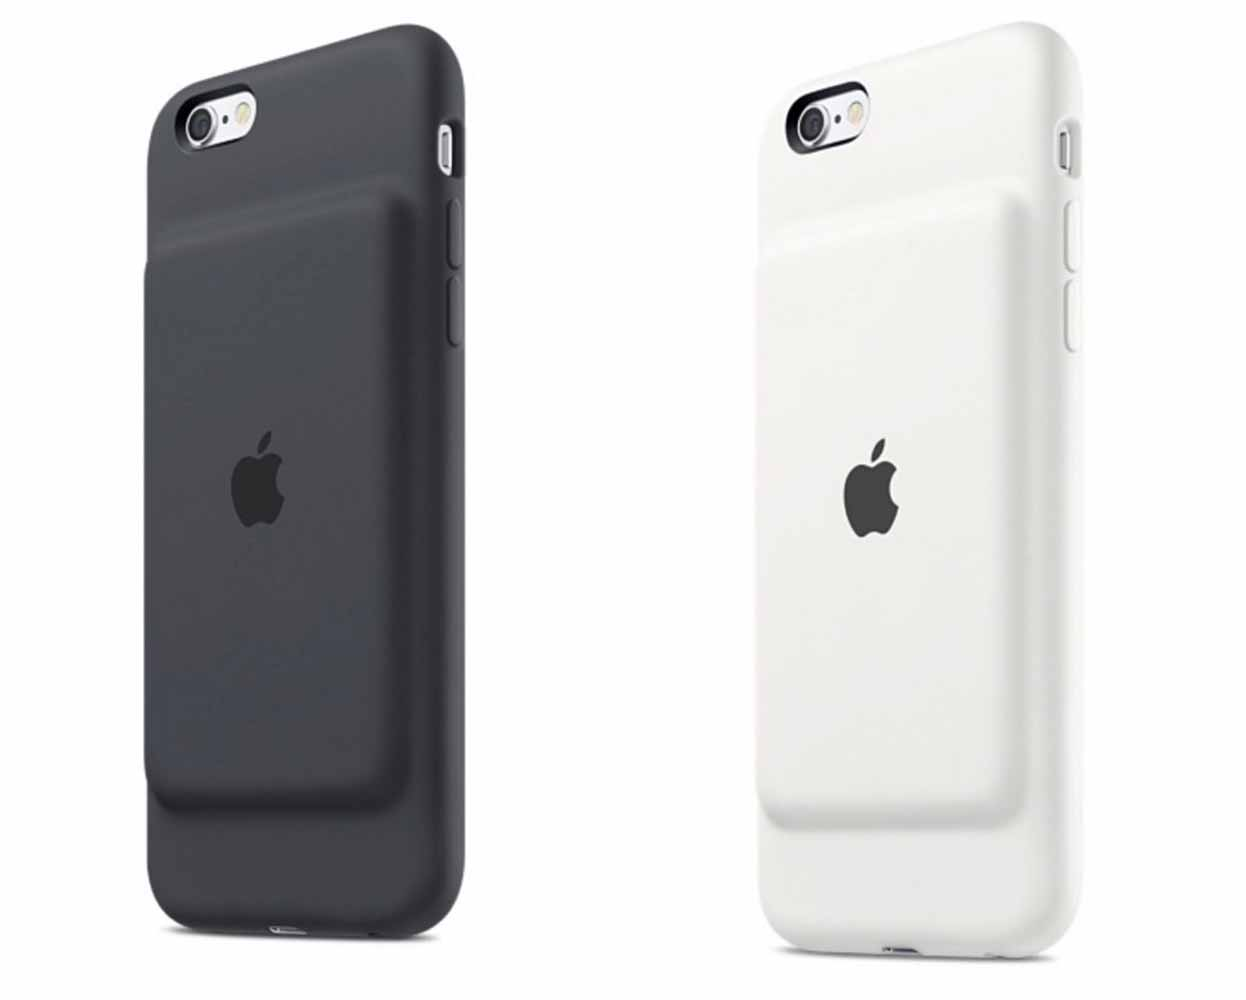 Apple、「iPhone 6/6s」向けバッテリー内蔵ケース「iPhone 6s Smart Battery Case」の販売を開始